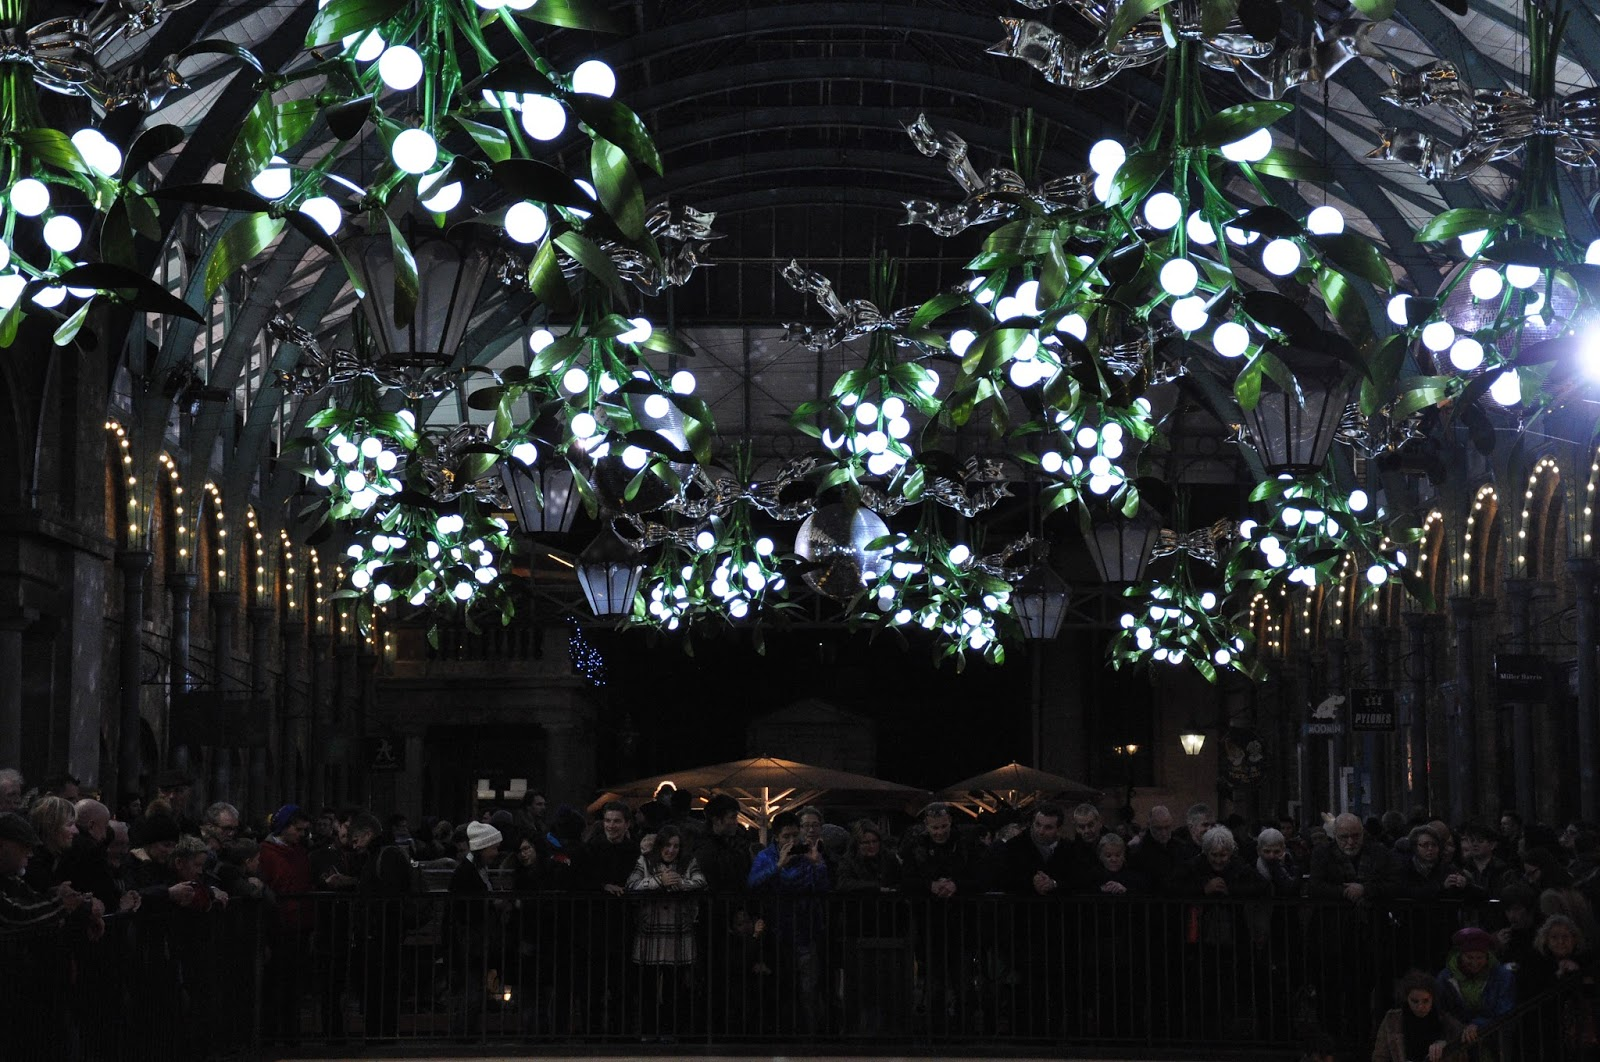 Mistletoe decorations, Covent Garden, London, England